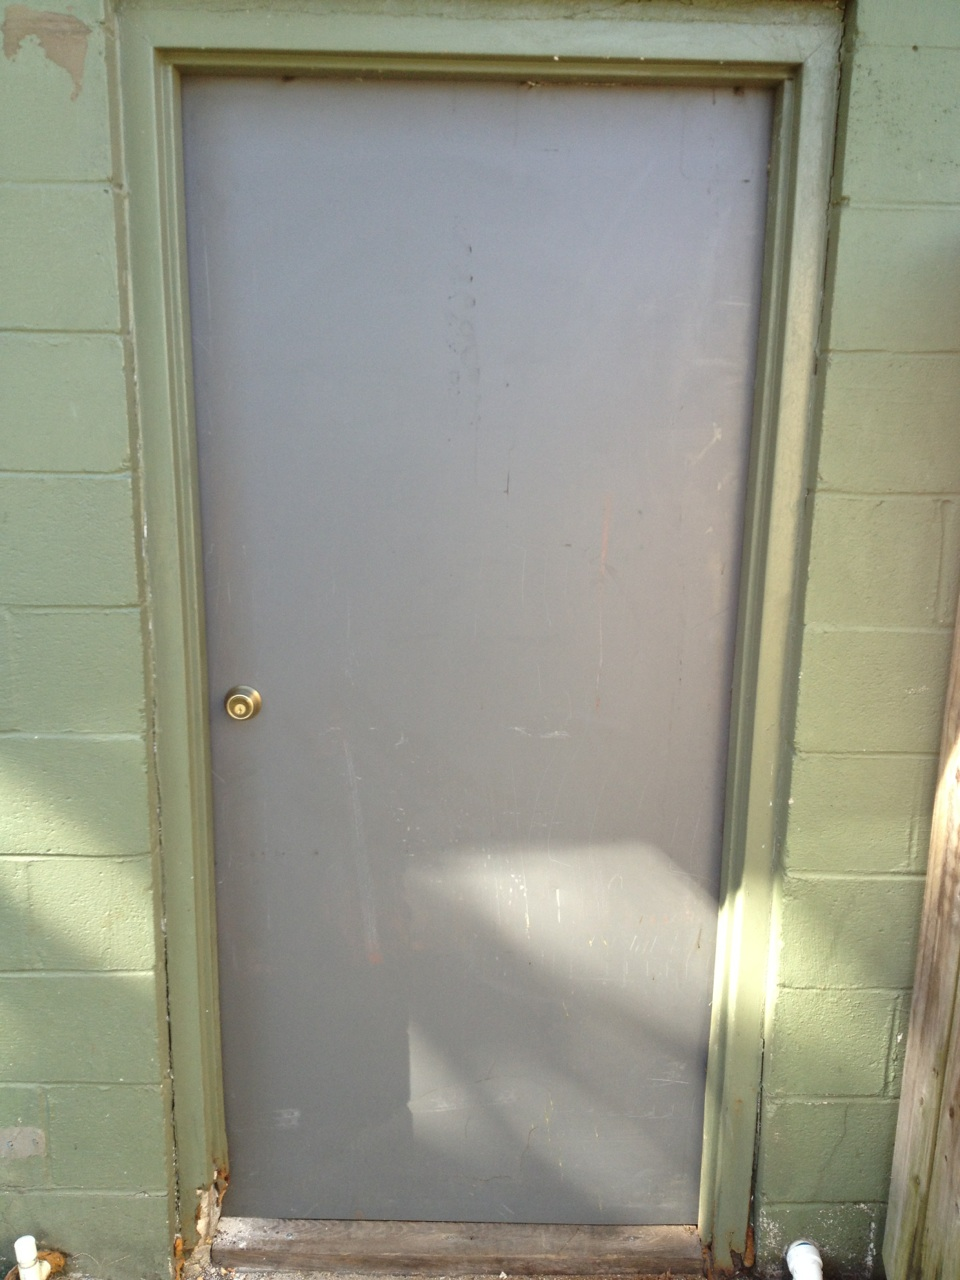 The rear door forcible entry and forcible exit for Rear exterior door